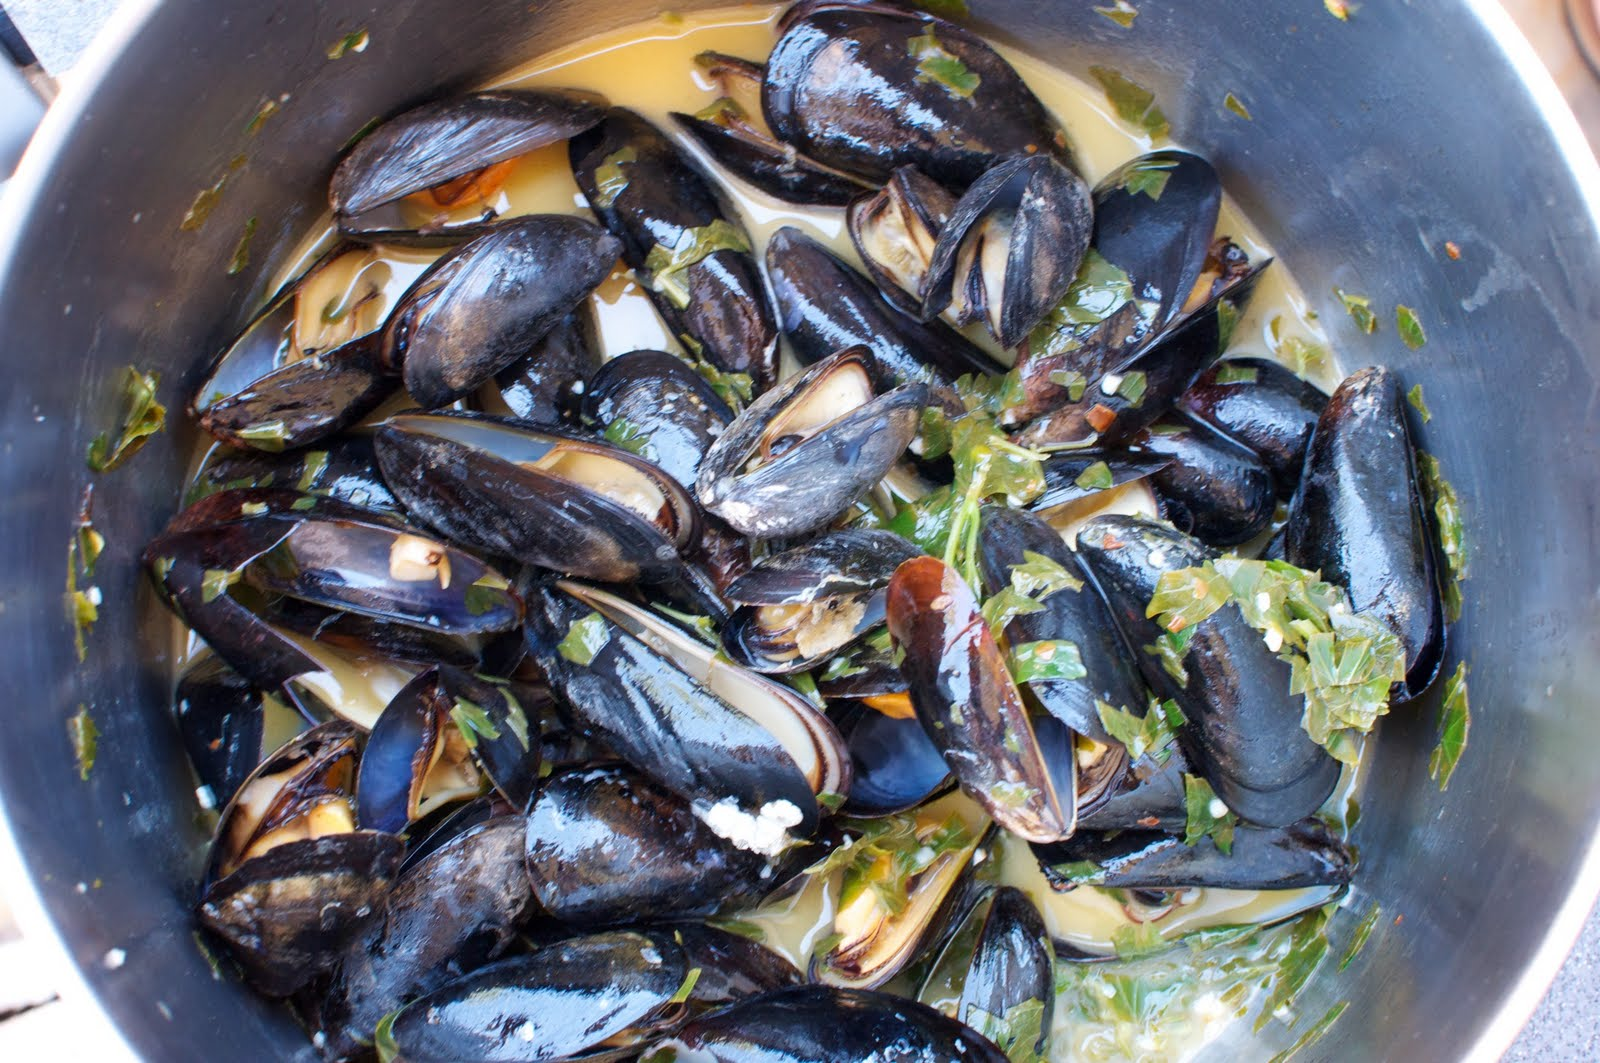 Fish and Veggies: Grilled Mussels in Awesome Sauce